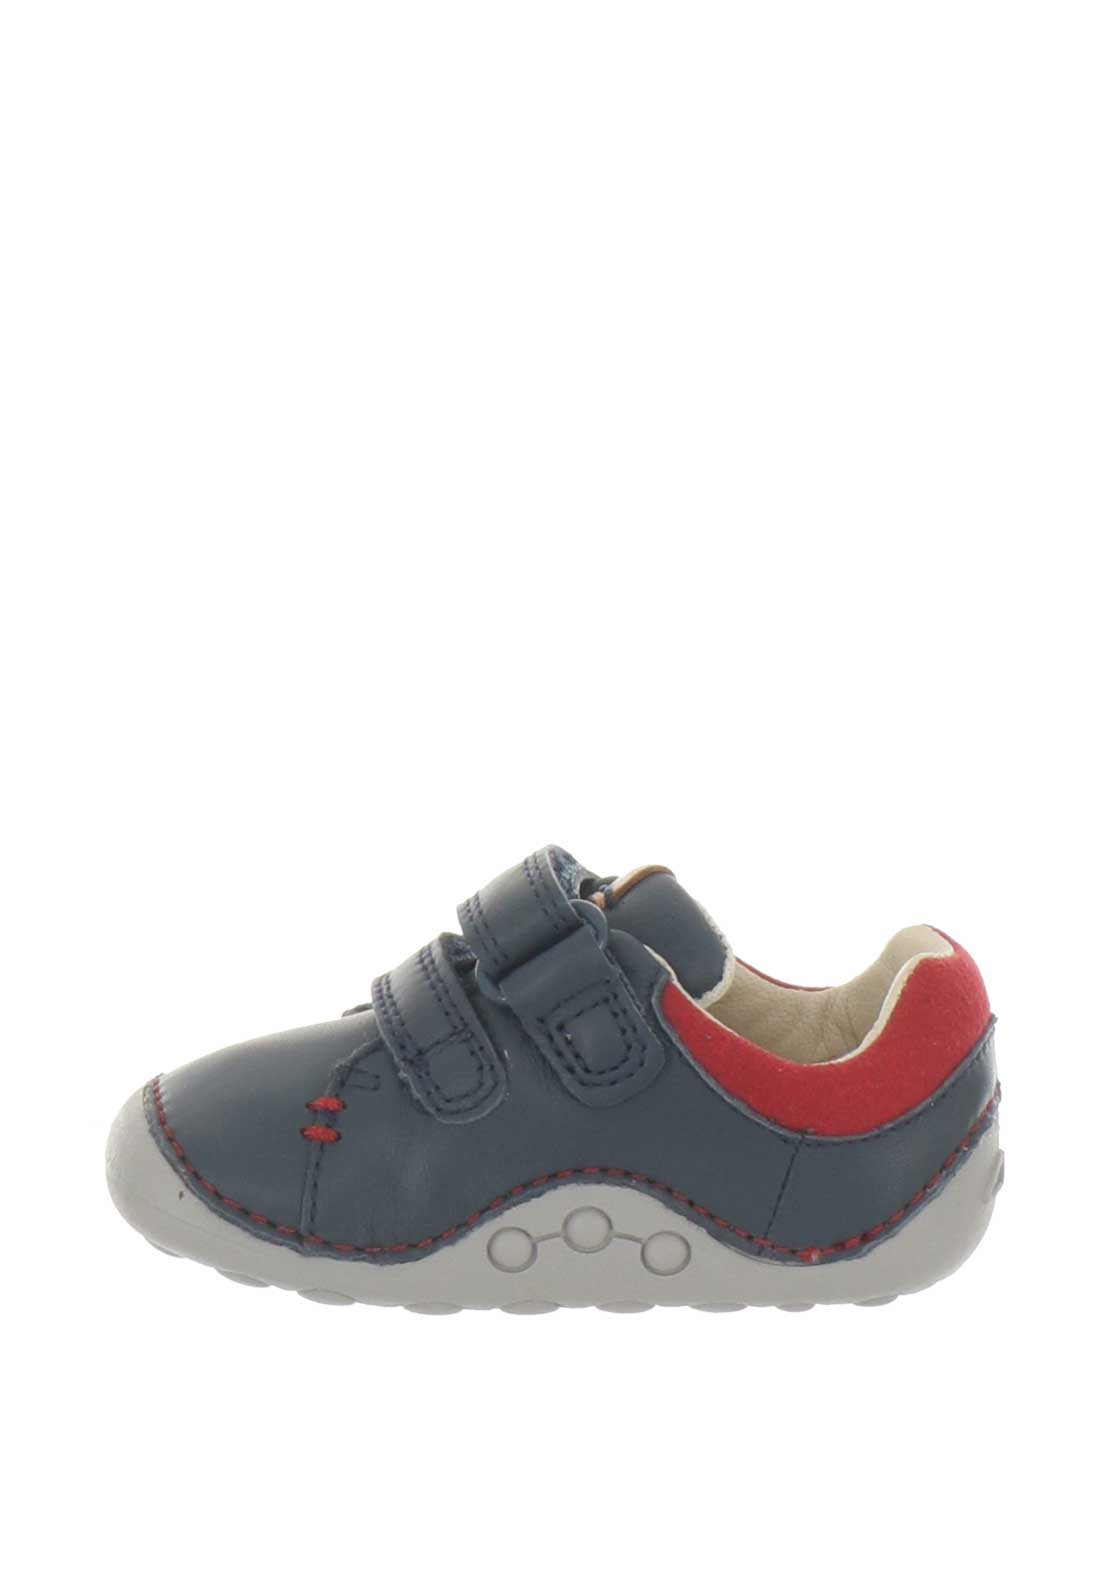 0ed6edcc Clarks Baby Boys Tiny Toby Leather Pre-Walking Shoes, Navy